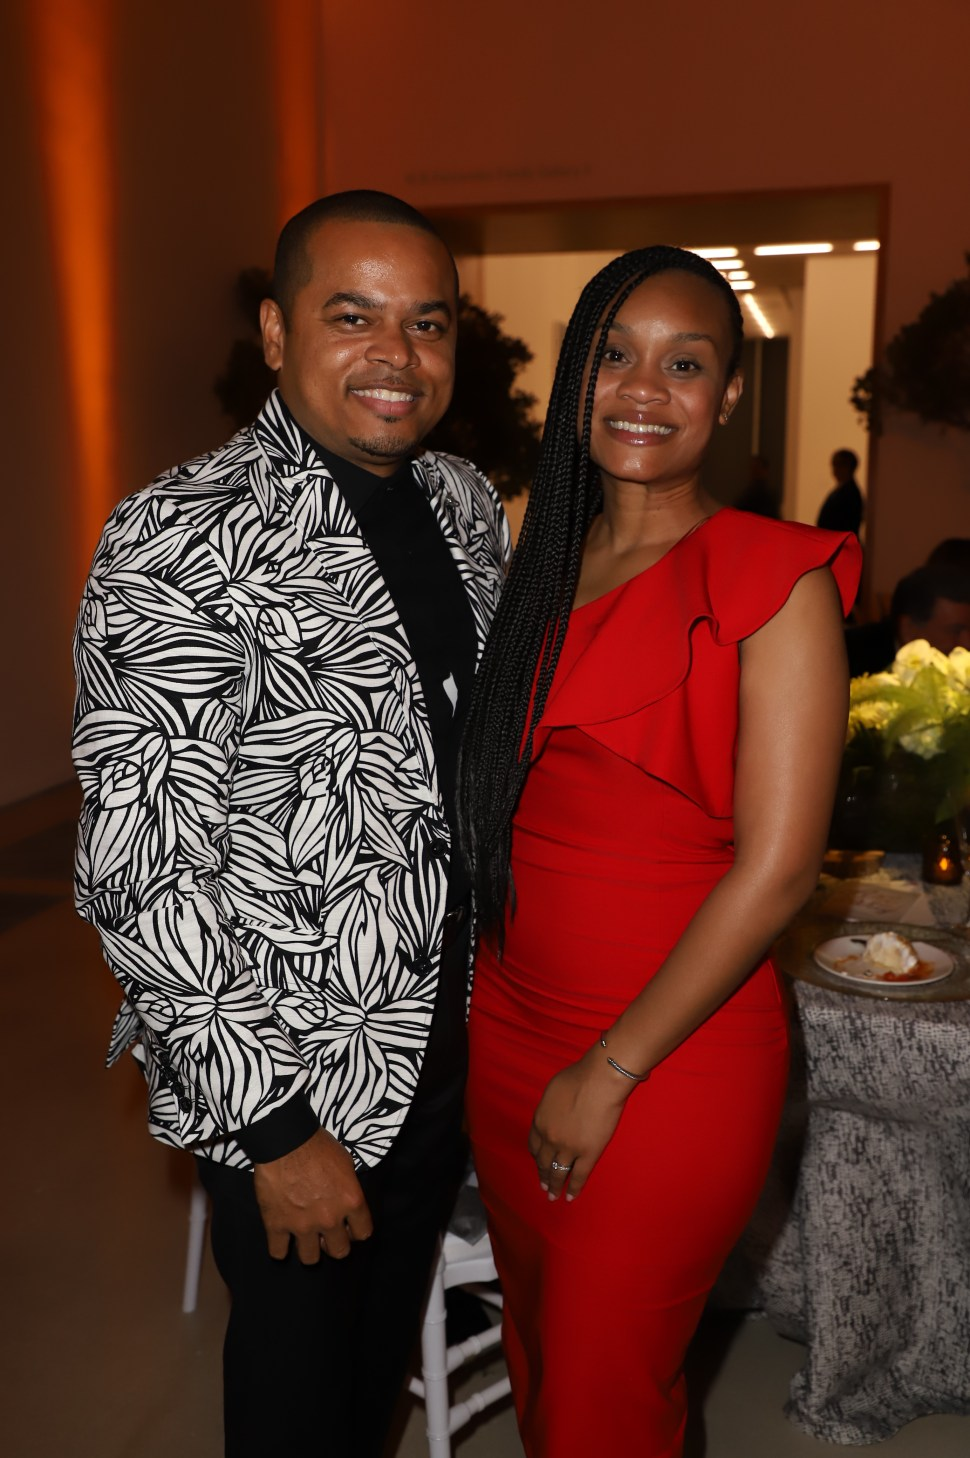 9. City of Miami Commissioner Keon Hardemon & Adria Hardemon